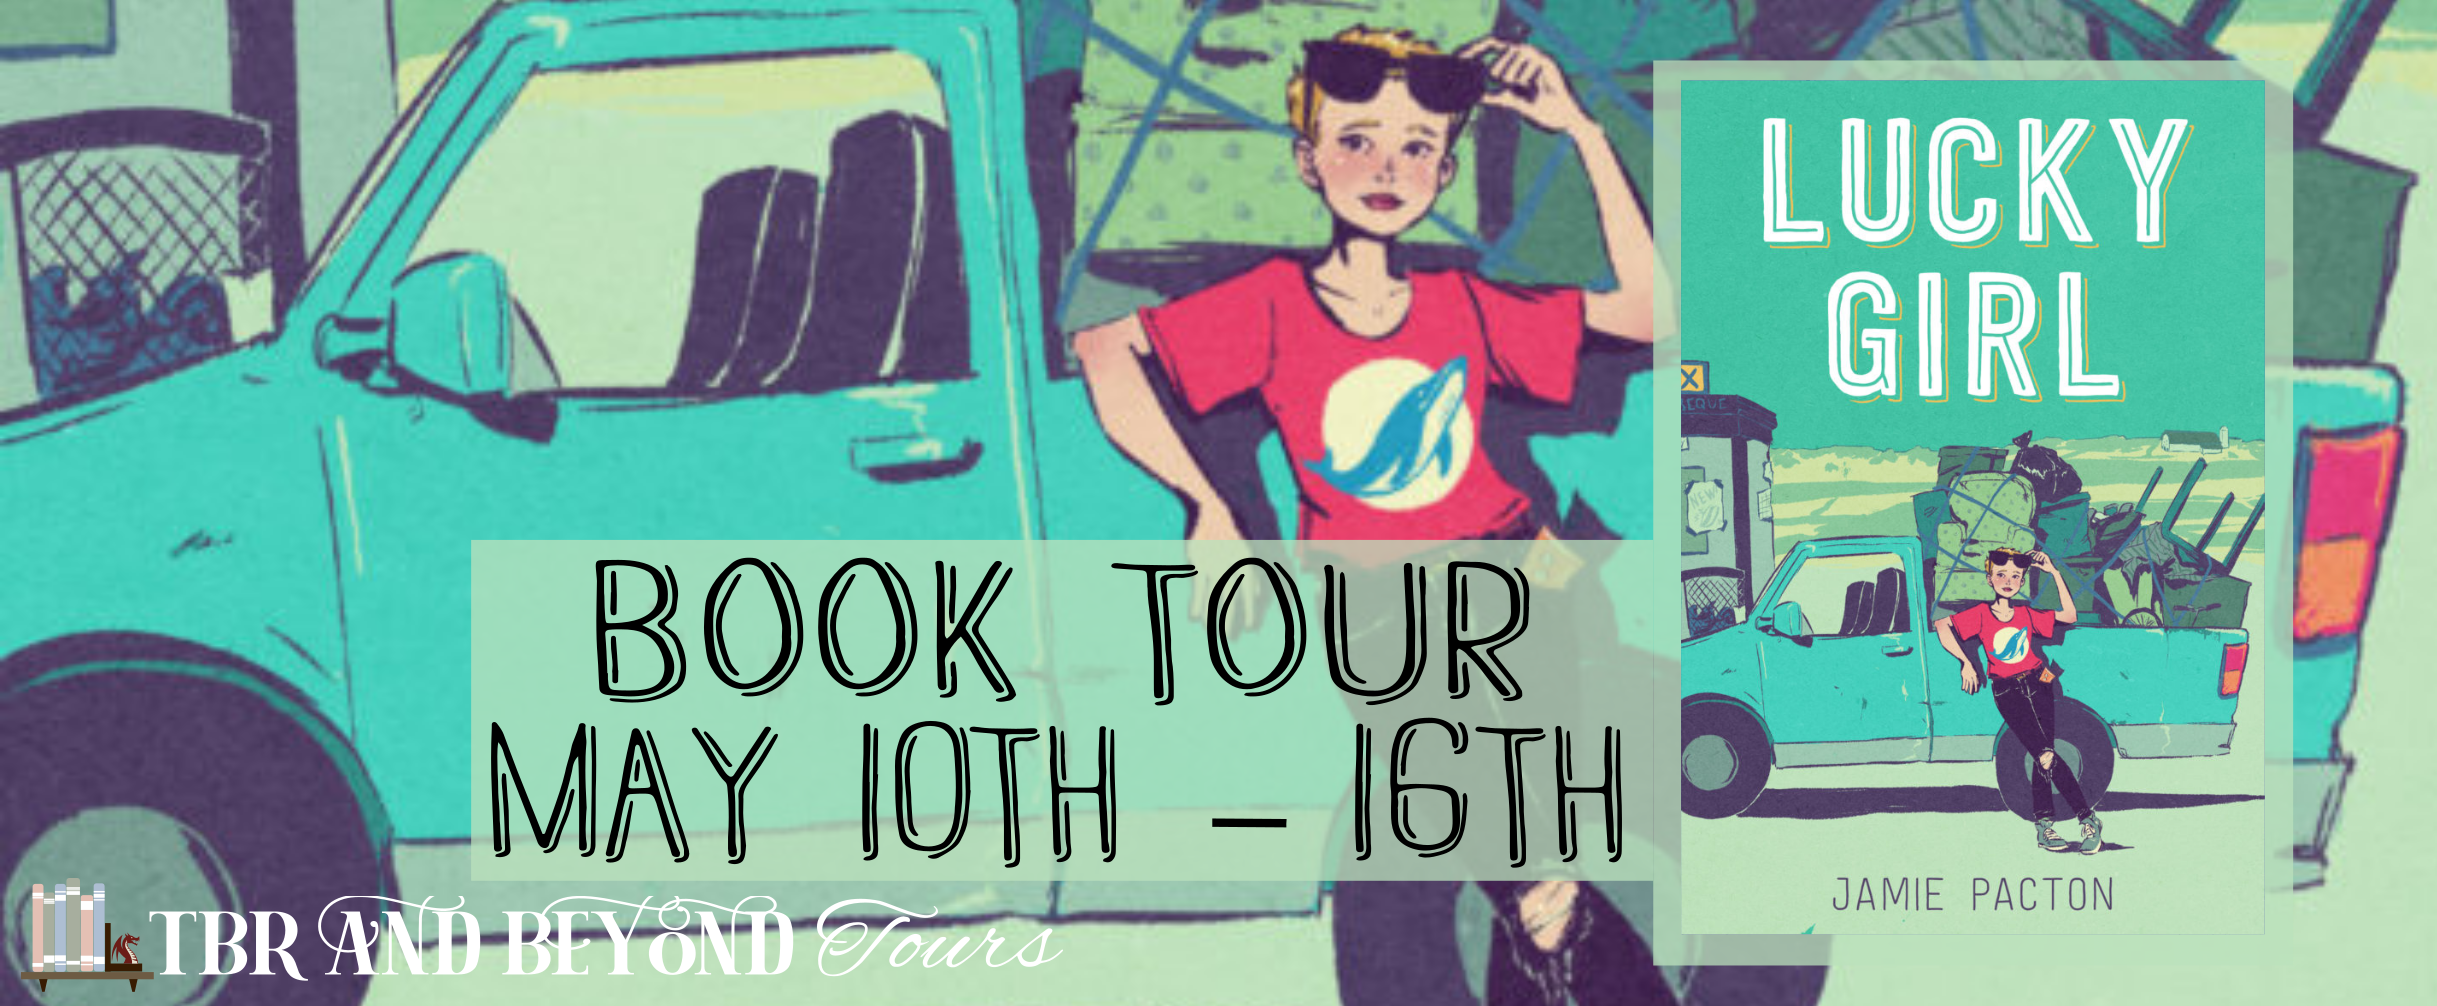 Blog Tour: Lucky Girl by Jamie Pacton (Review + Reading Journal!)